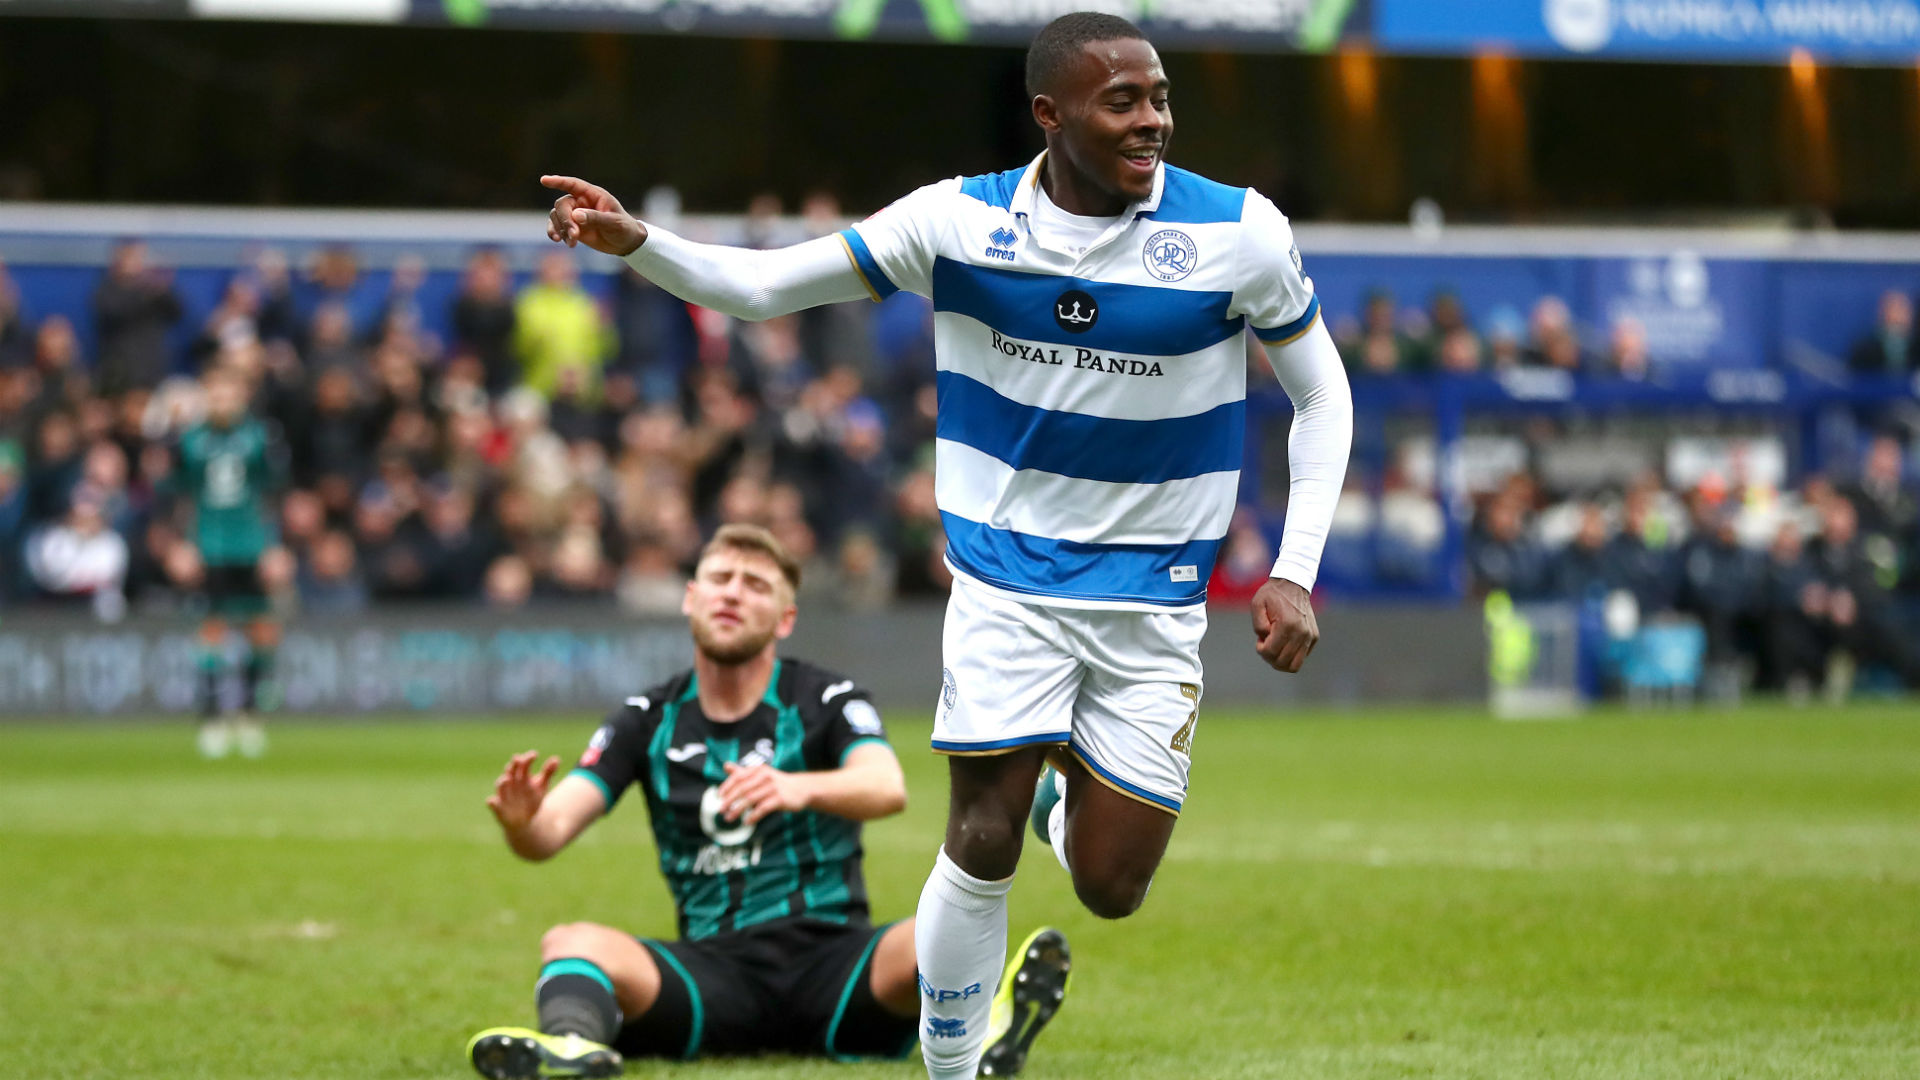 Osayi-Samuel Keen To Emulate QPR Legend Sinclair